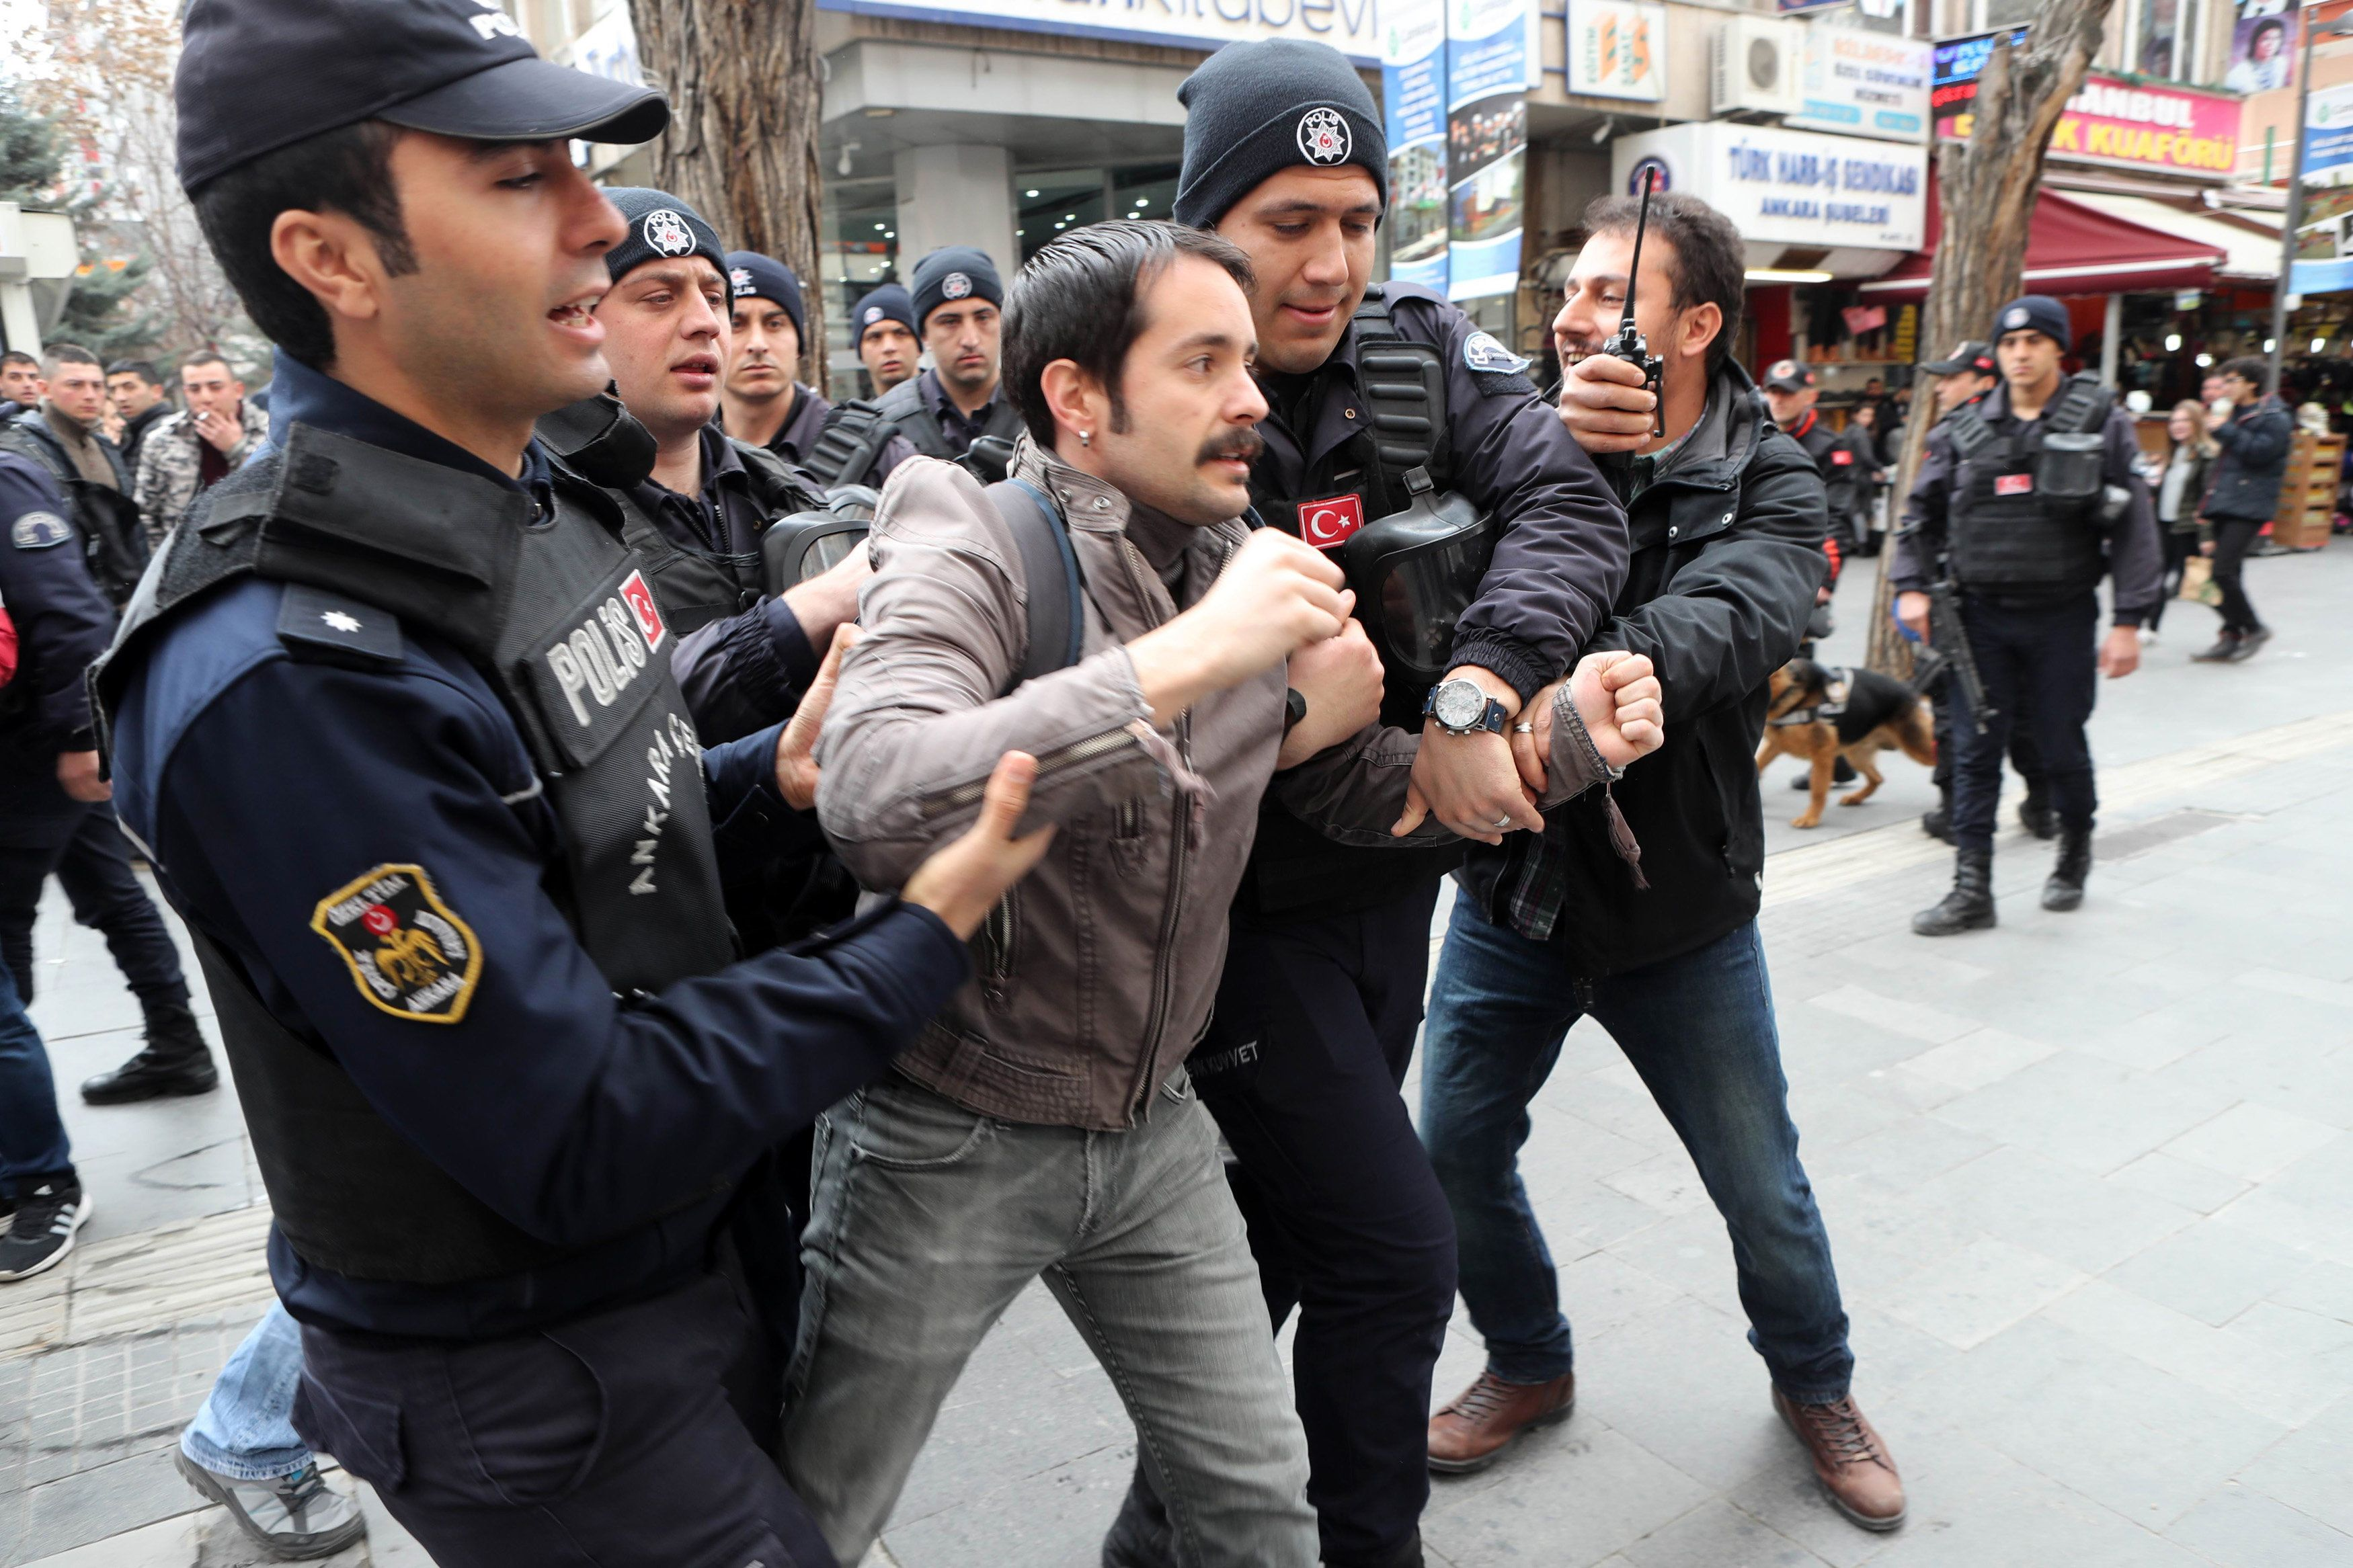 Turkish policemen arrest a protester during a demonstration  on March 11, 2017 in Ankara.   Turkish journalists and opposition lawmakers protested in Istanbul on March 11, 2017, against the detention of reporters, as a crackdown on the media has accelerated after the failed coup against President Recep Tayyip Erdogan. 'Journalism is not a crime' and 'We will not remain silent,' chanted the crowd of some 50 people, who railed against the conditions the journalists are held in.  / AFP PHOTO / ADEM ALTAN        (Photo credit should read ADEM ALTAN/AFP/Getty Images)